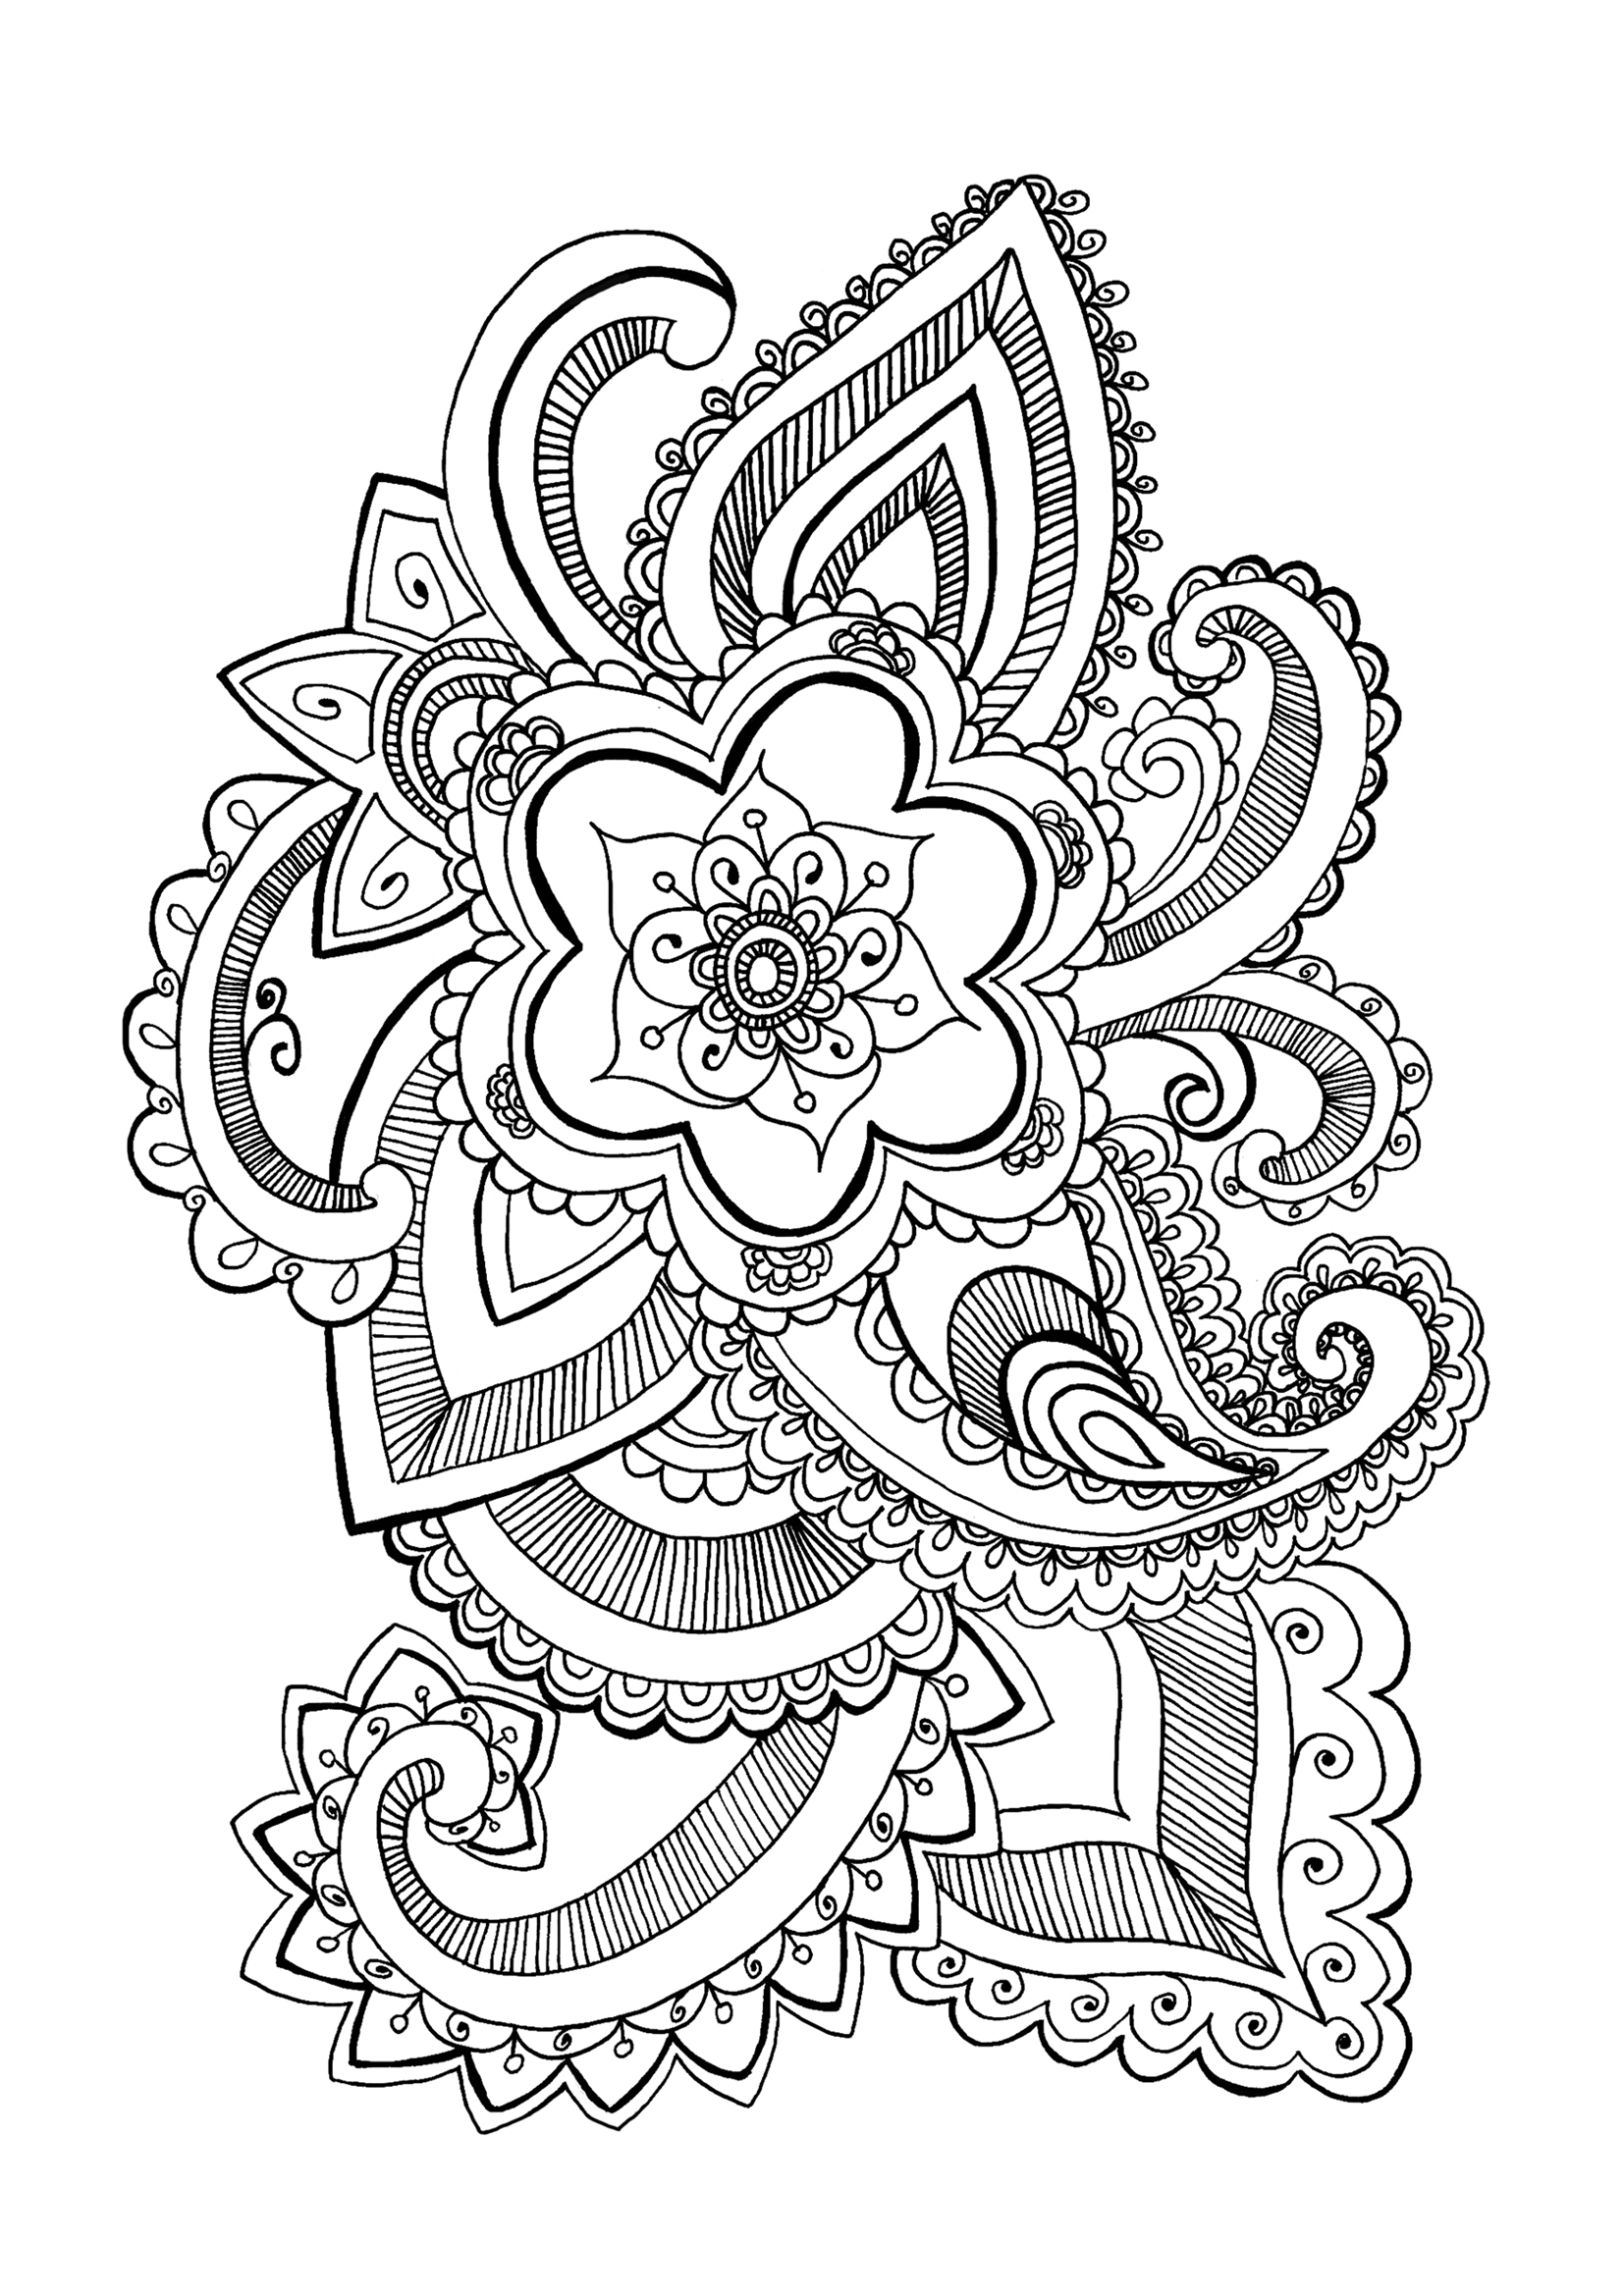 coloring flowers for adults four free flower coloring pages for adults flowers adults for coloring